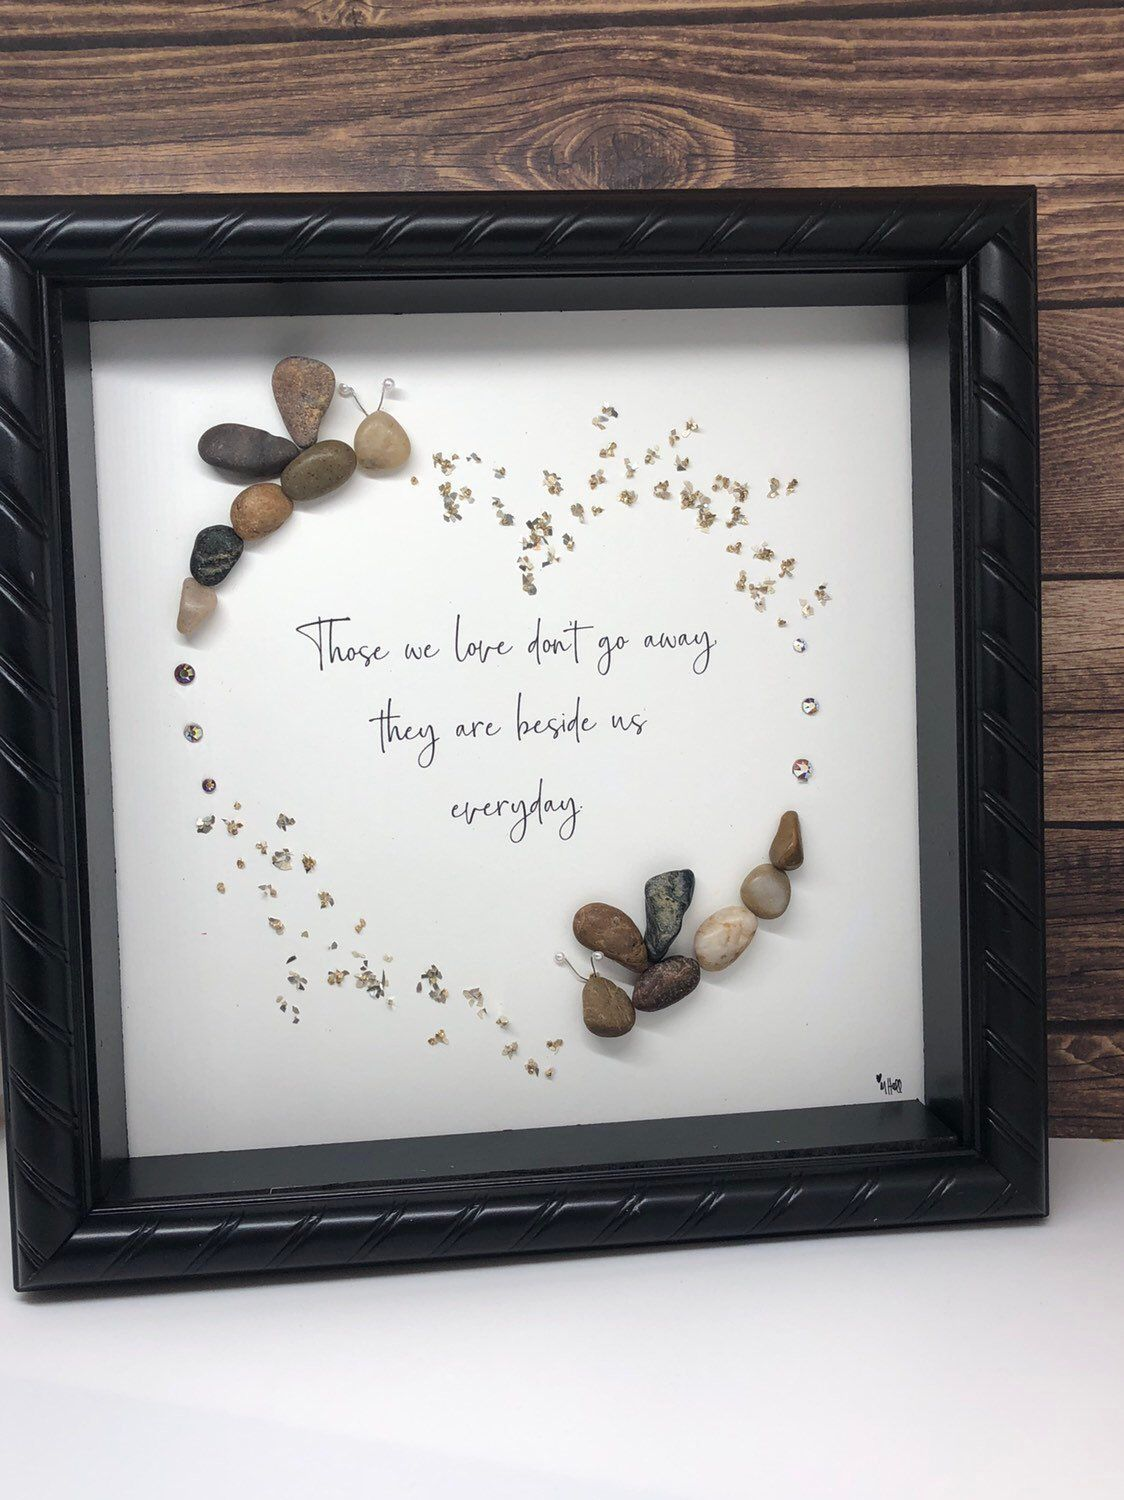 Photo of Pebble Art / Unique gift / Dragonflies / in memory / loved one / Remembrance / Home Decor / Christmas / condolences / Ocassion / Wall decor